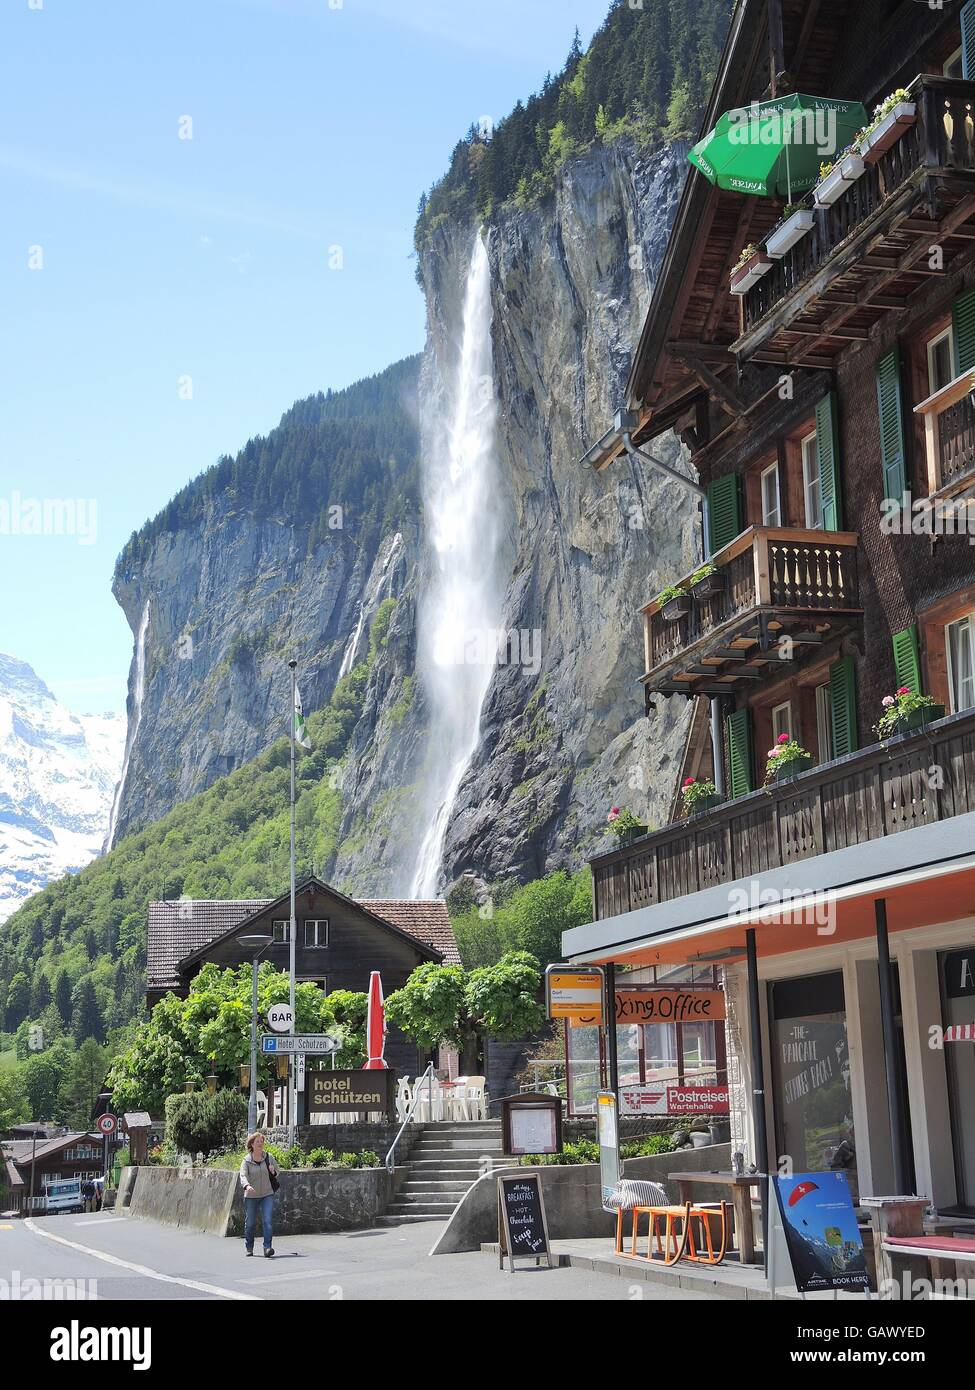 Lauterbrunnen, Switzerland. 26th May, 2016. View of Lauterbrunnen, Switzerland, 26 May 2016. Every year, hundreds - Stock Image